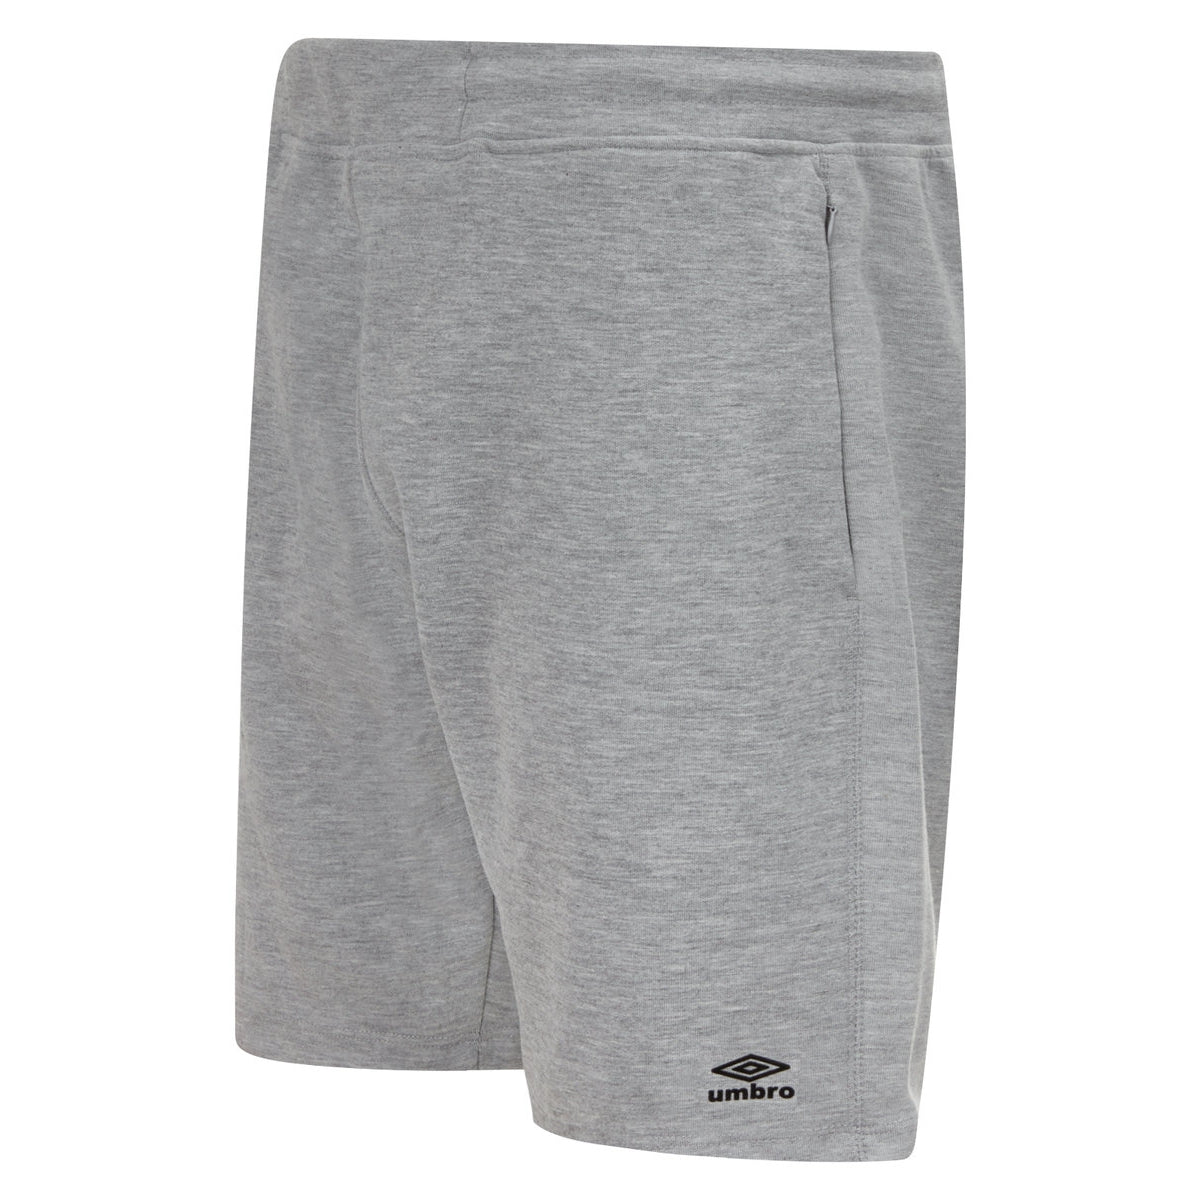 Umbro Pro Fleece short in grey marl with black logo